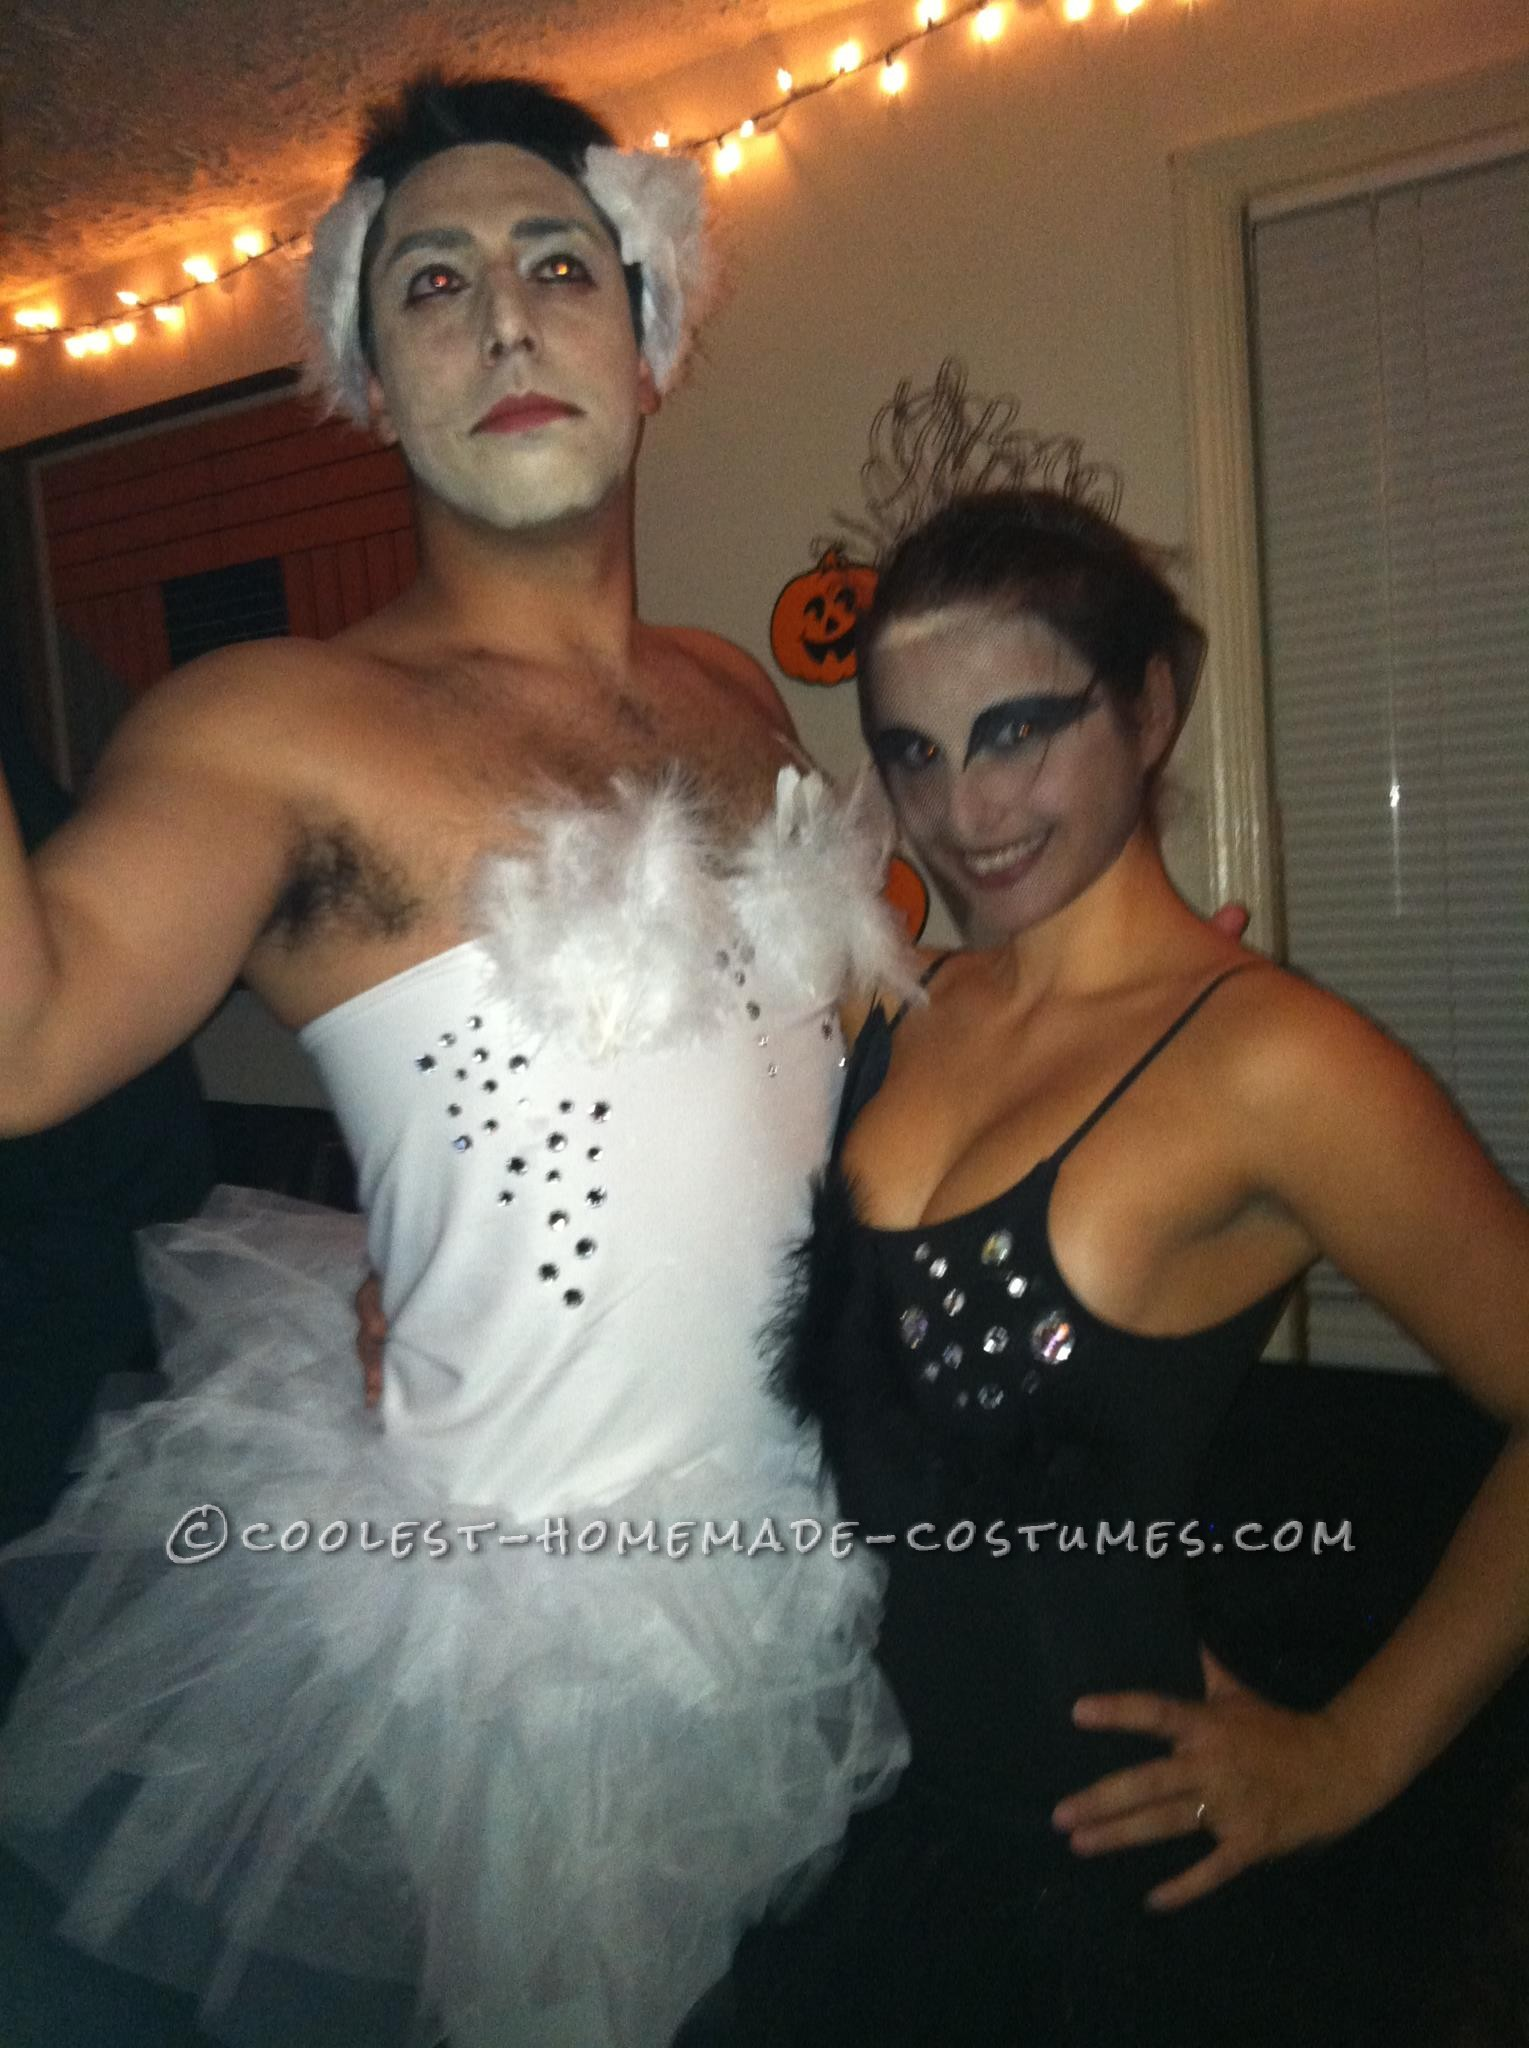 Funny Halloween Couple's Costume Idea: Black and White Swans